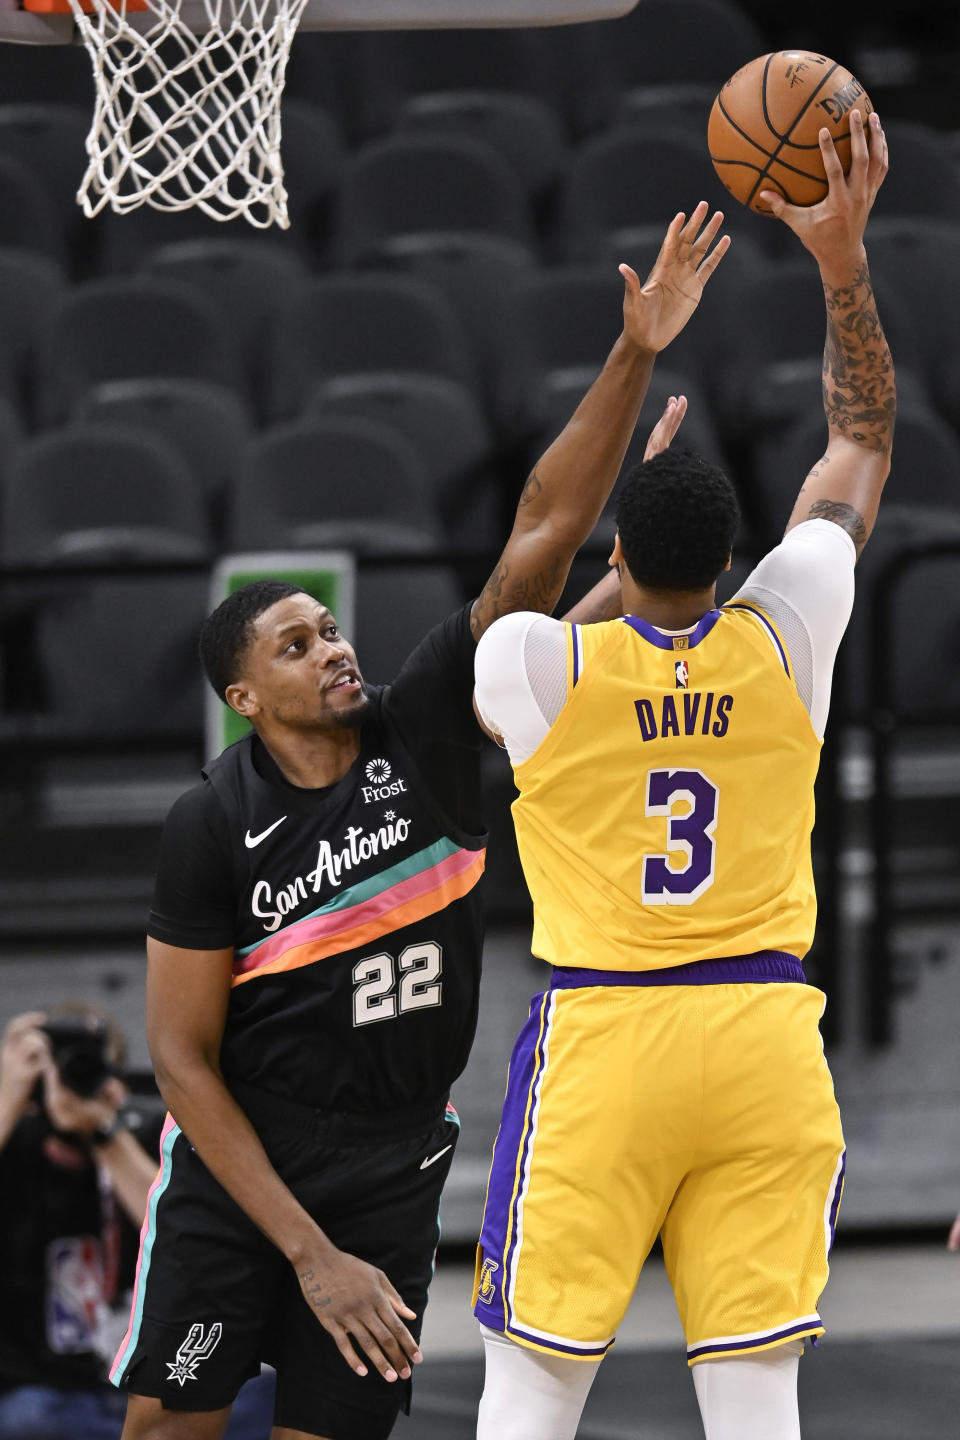 Los Angeles Lakers' Anthony Davis (3) shoots over San Antonio Spurs' Rudy Gay during the first half of an NBA basketball game Friday, Jan. 1, 2021, in San Antonio. (AP Photo/Darren Abate)